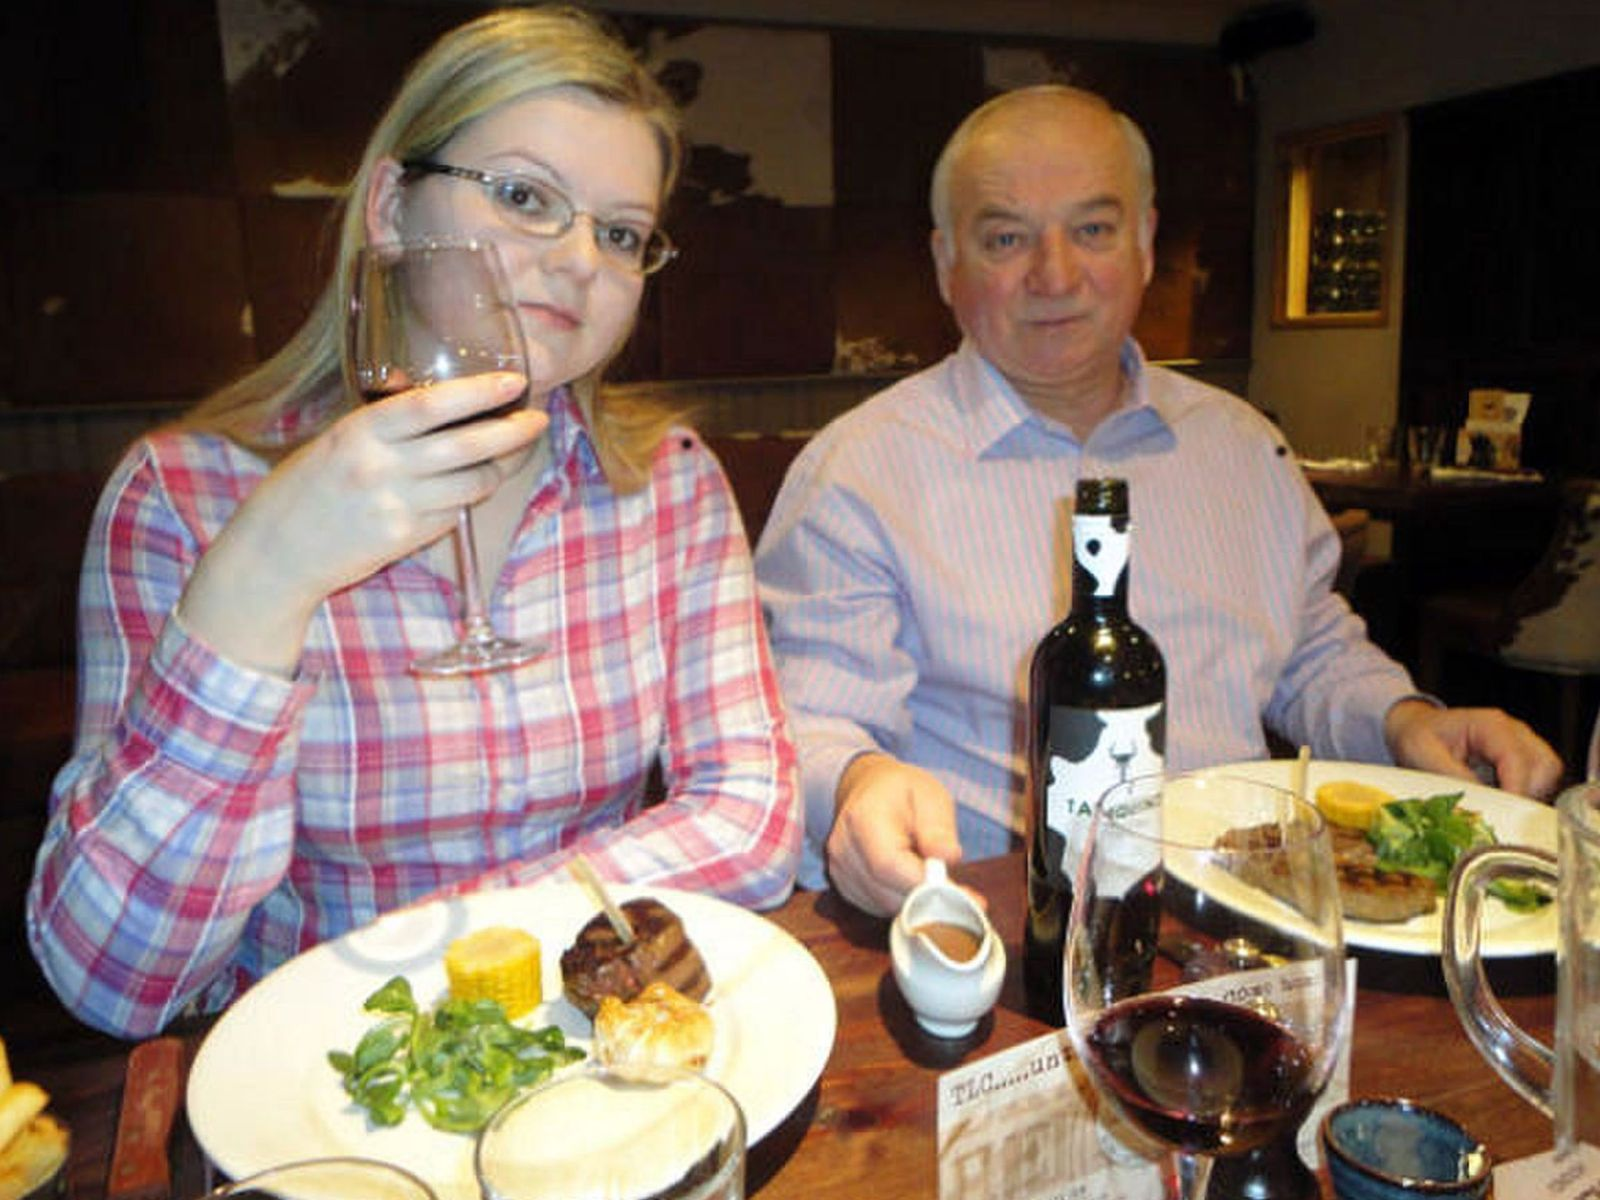 Yulia Skripal (left) and Sergei Skripal (right) were both poisoned. Source: Unknown.